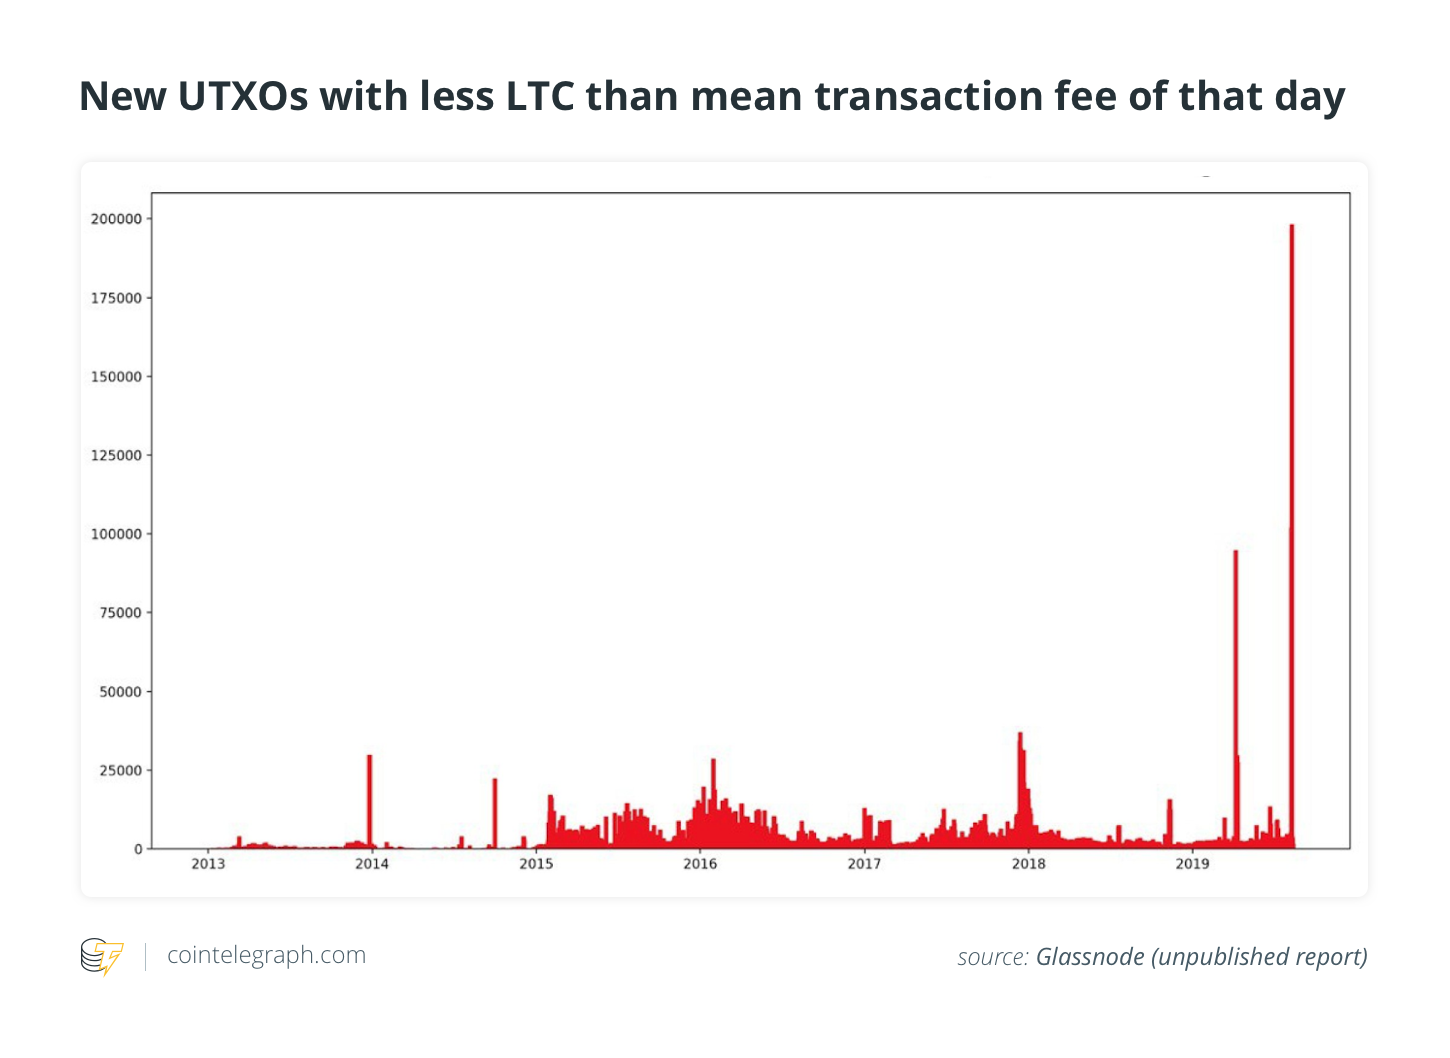 New UTXOs with less LTC than mean transaction fee that day